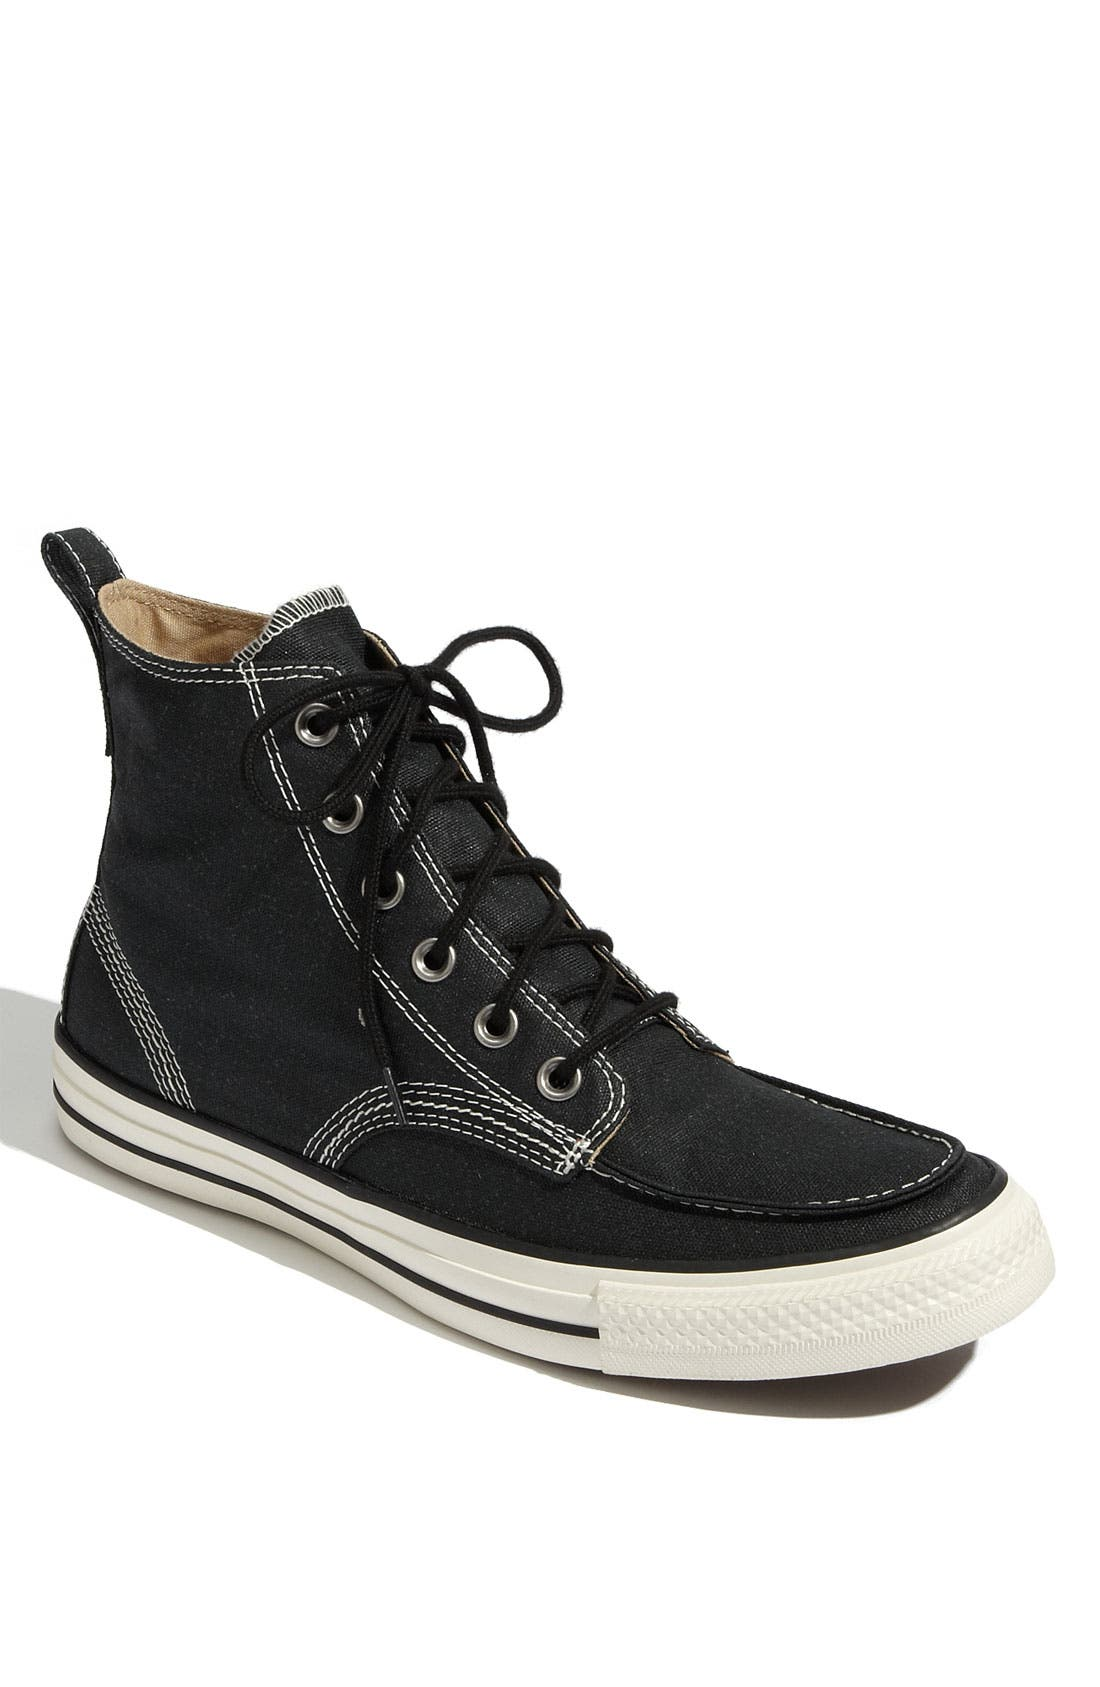 Chuck Taylor<sup>®</sup> 'Classic' Canvas Boot,                             Main thumbnail 1, color,                             006